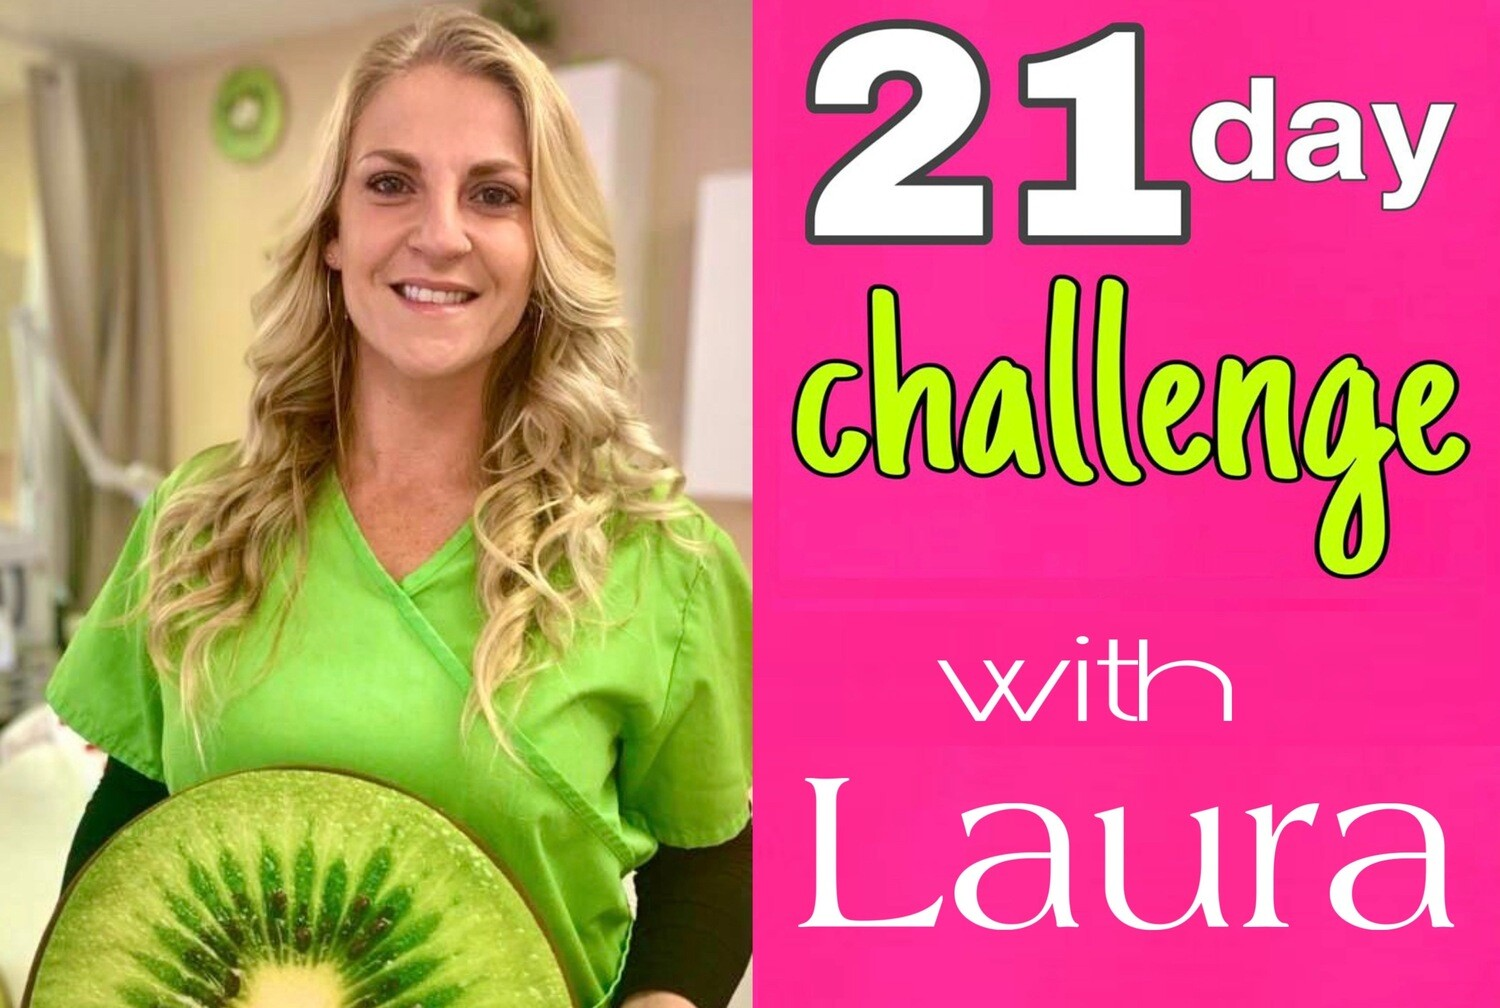 21 Day Challenge With Laura